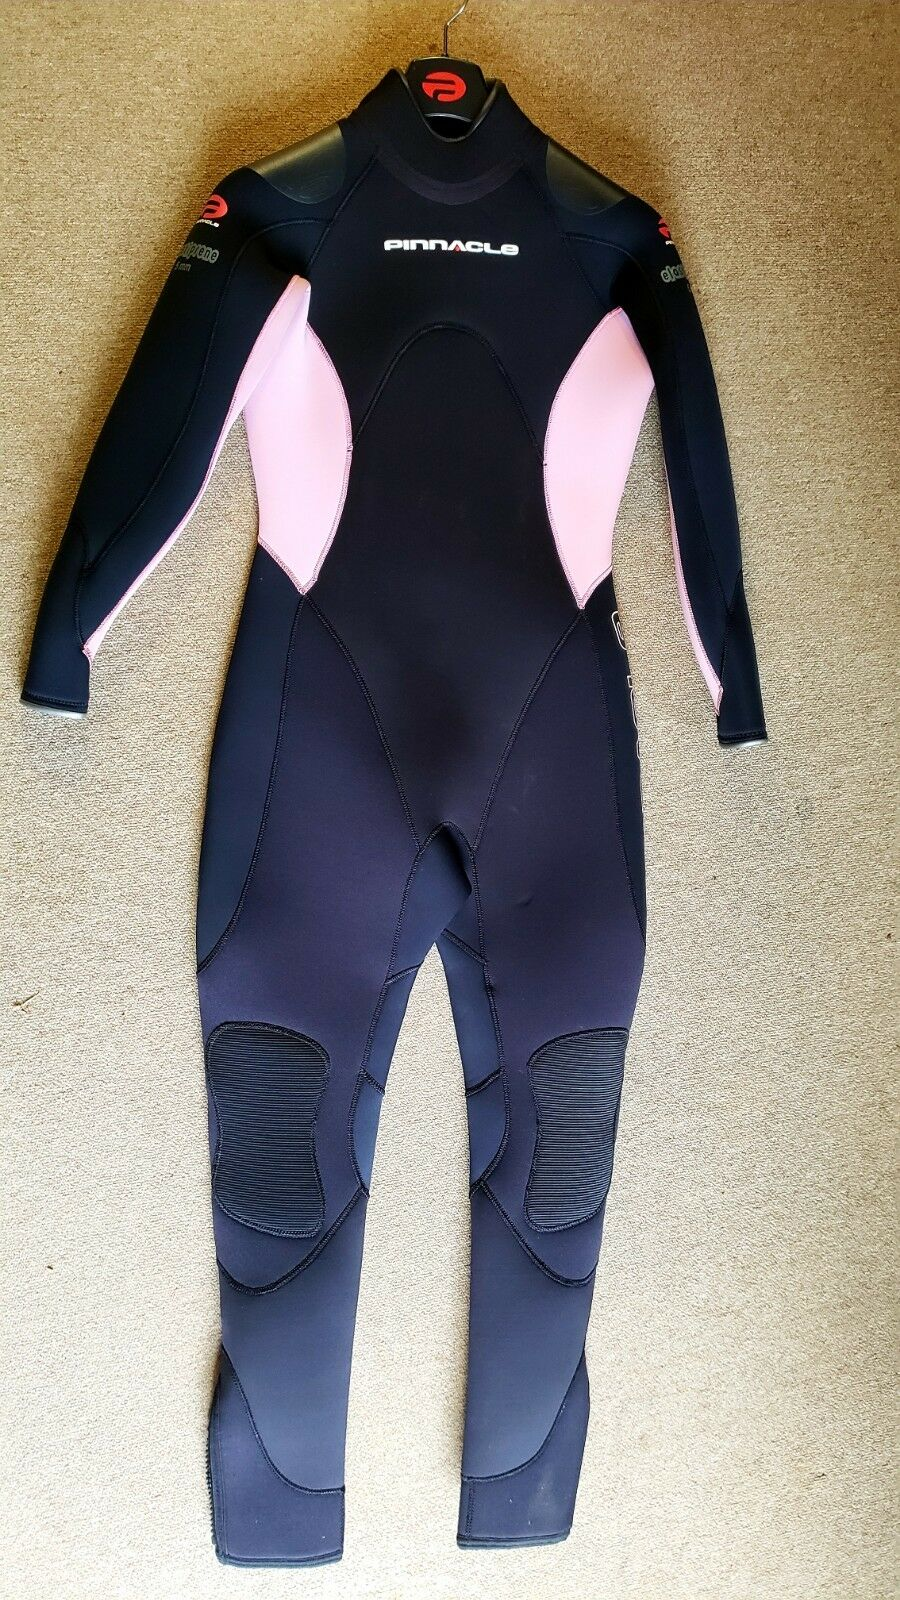 New Pinnacle Aquatics Elastiprene 5mm Suit  (Female-Pink-Large)  to provide you with a pleasant online shopping